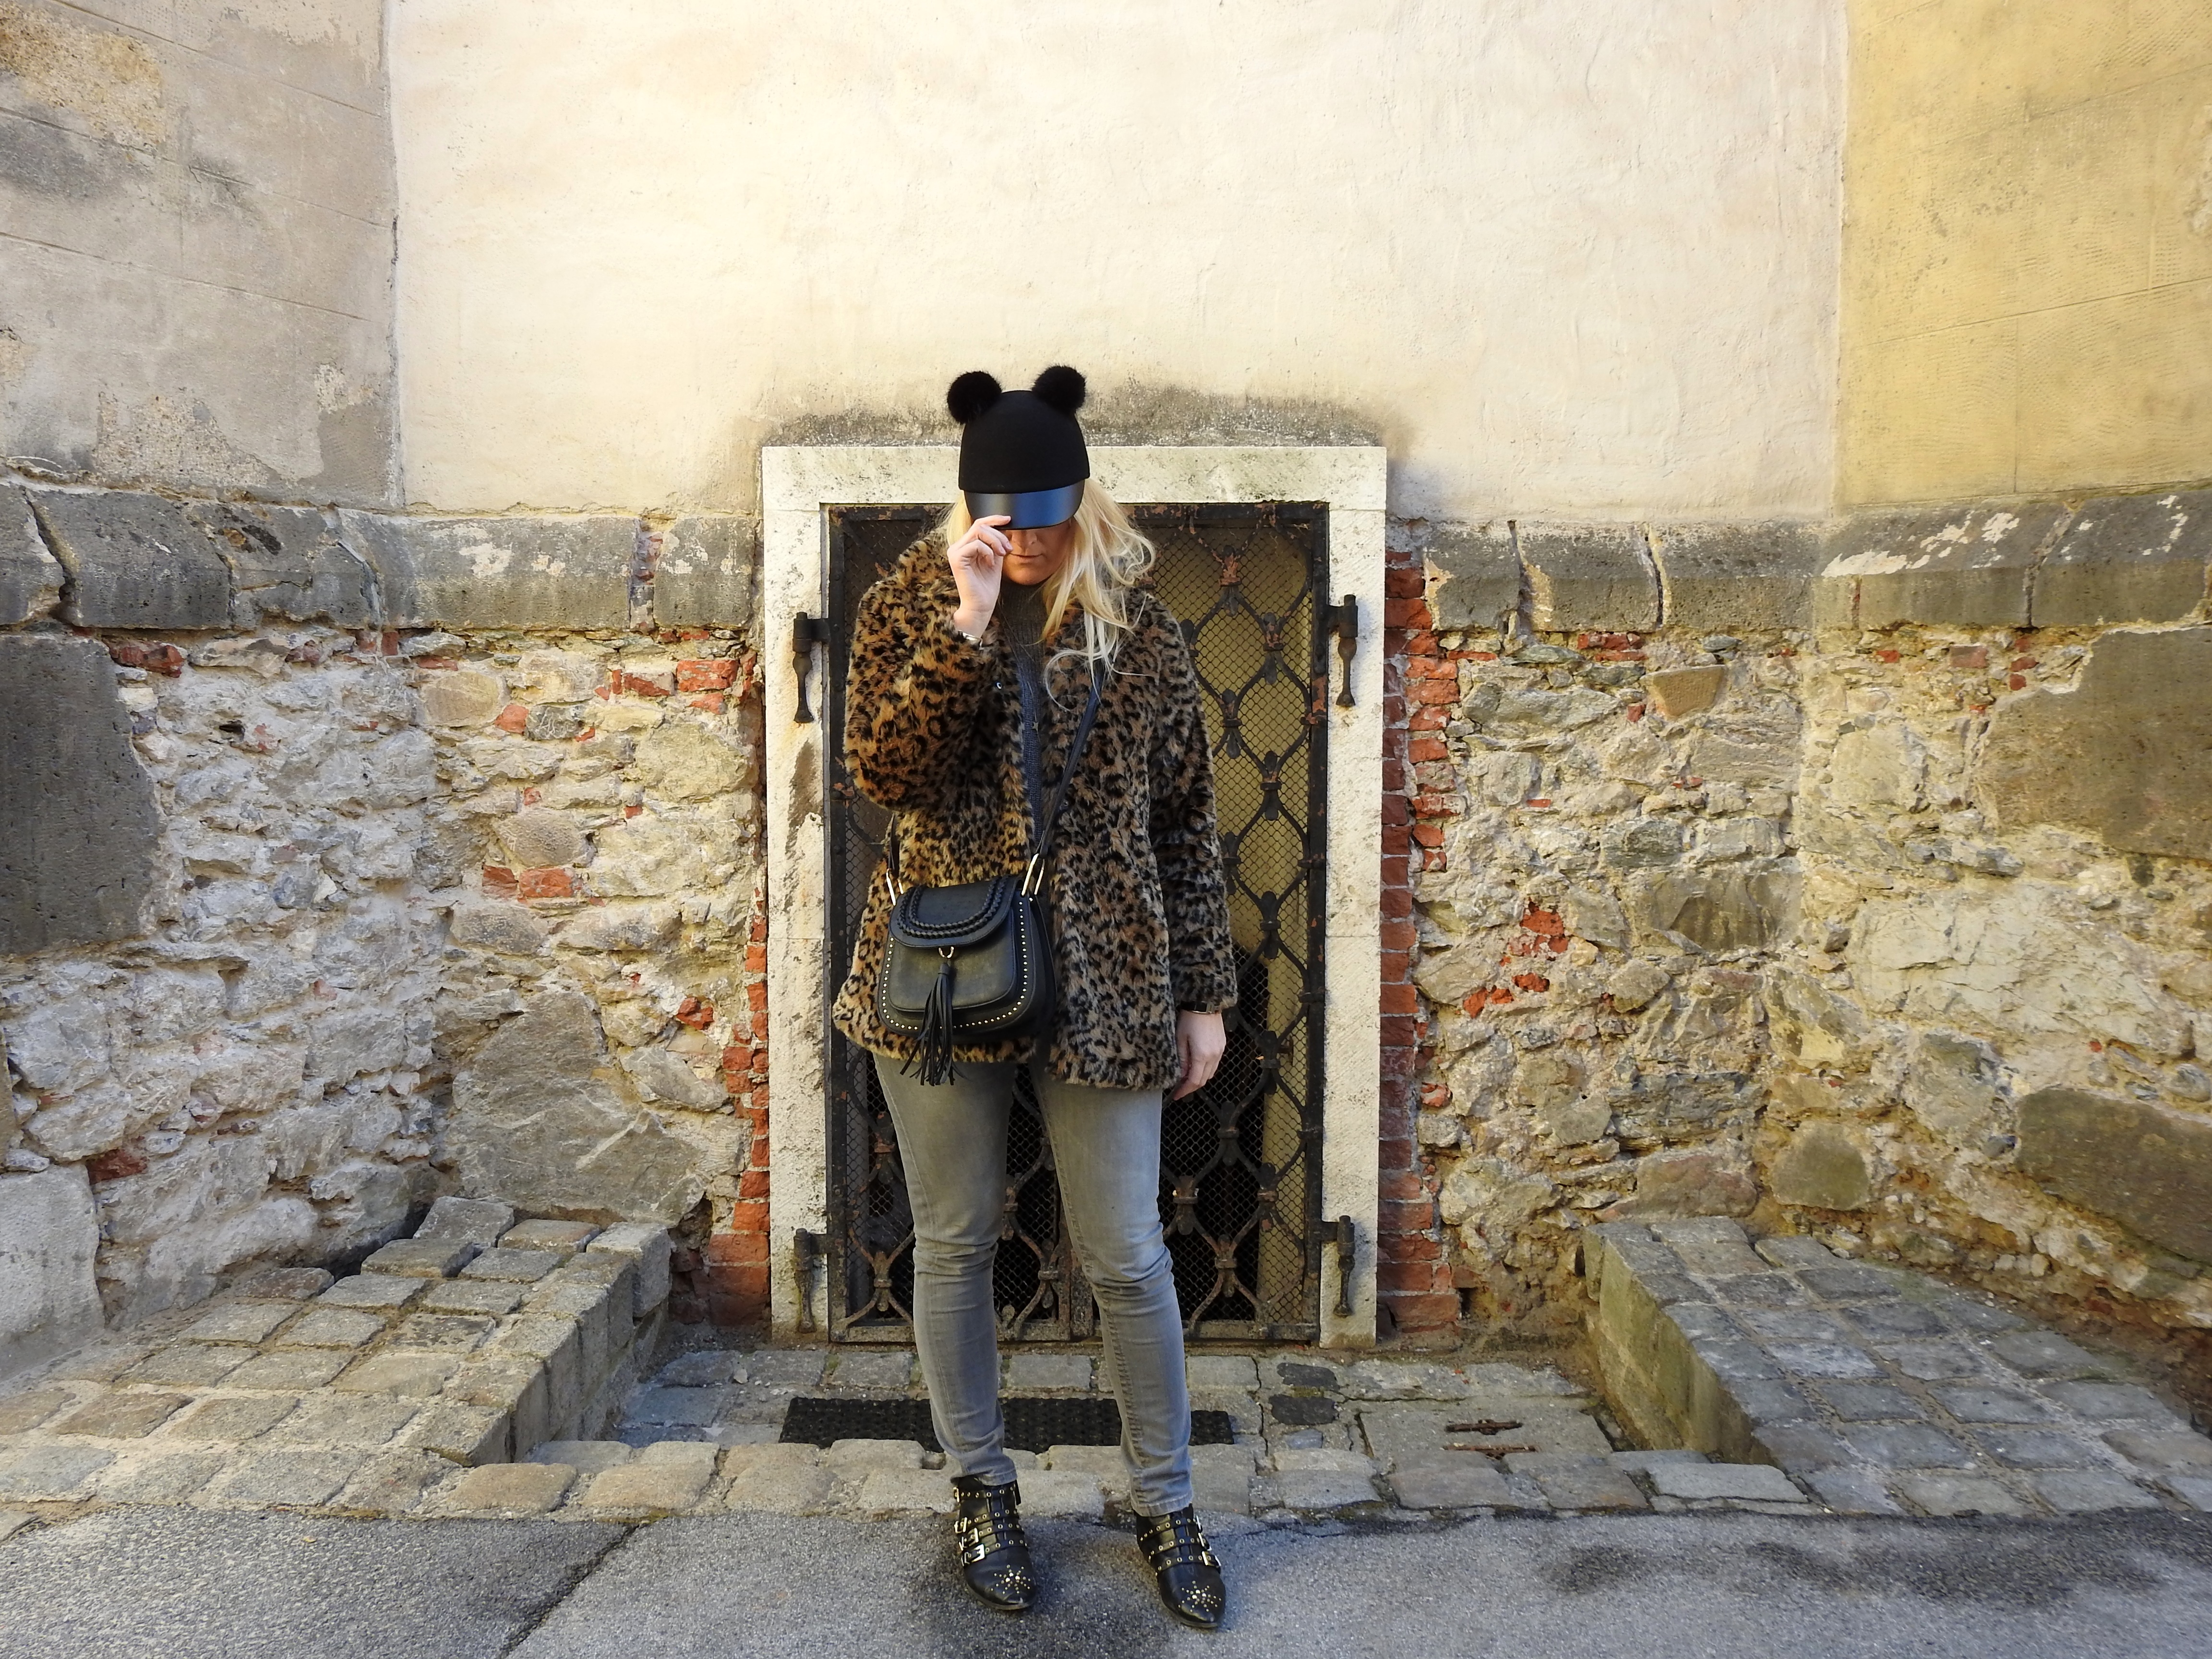 Winter-Jammern-Beklagen-Leoprint-Coat-Shein-Chloe-Bag-Studded-Suzanna-Boots-Zara-Denim-Grey-Pants-carrieslifestyle-Tamara-Prutsch